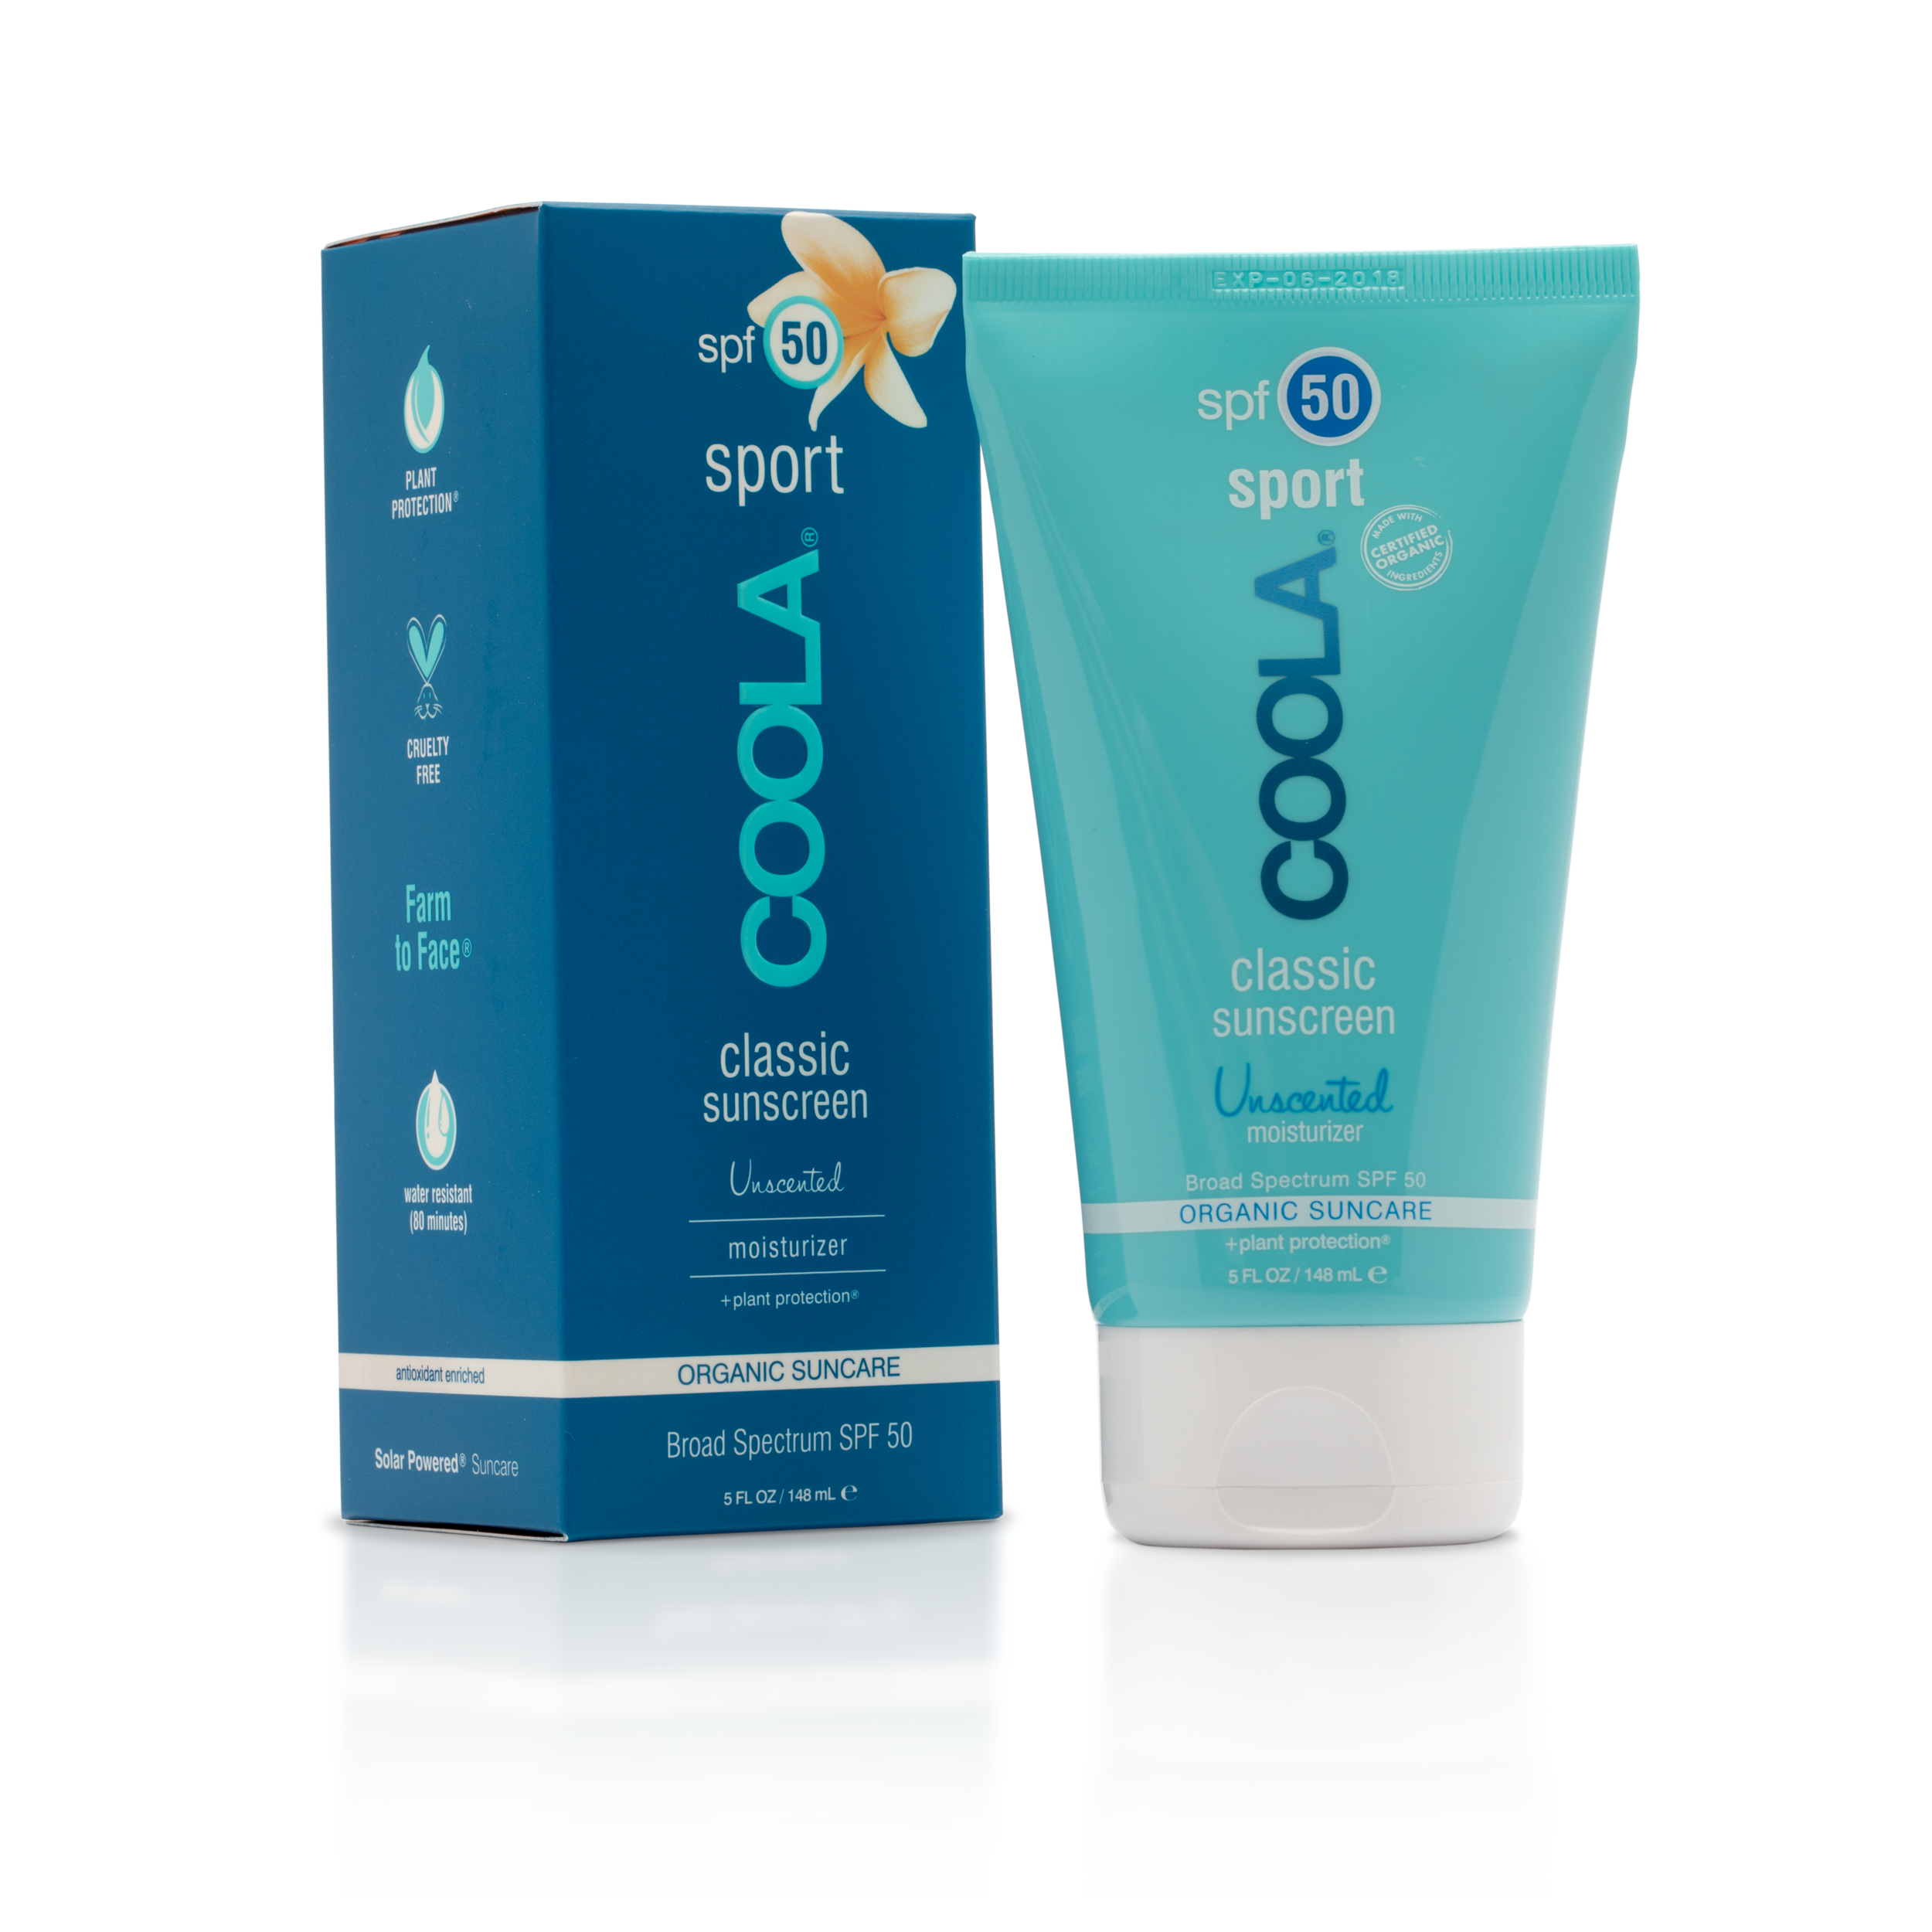 COOLA Sport Body SPF 50 Unscented Organic Sunscreen Lotion